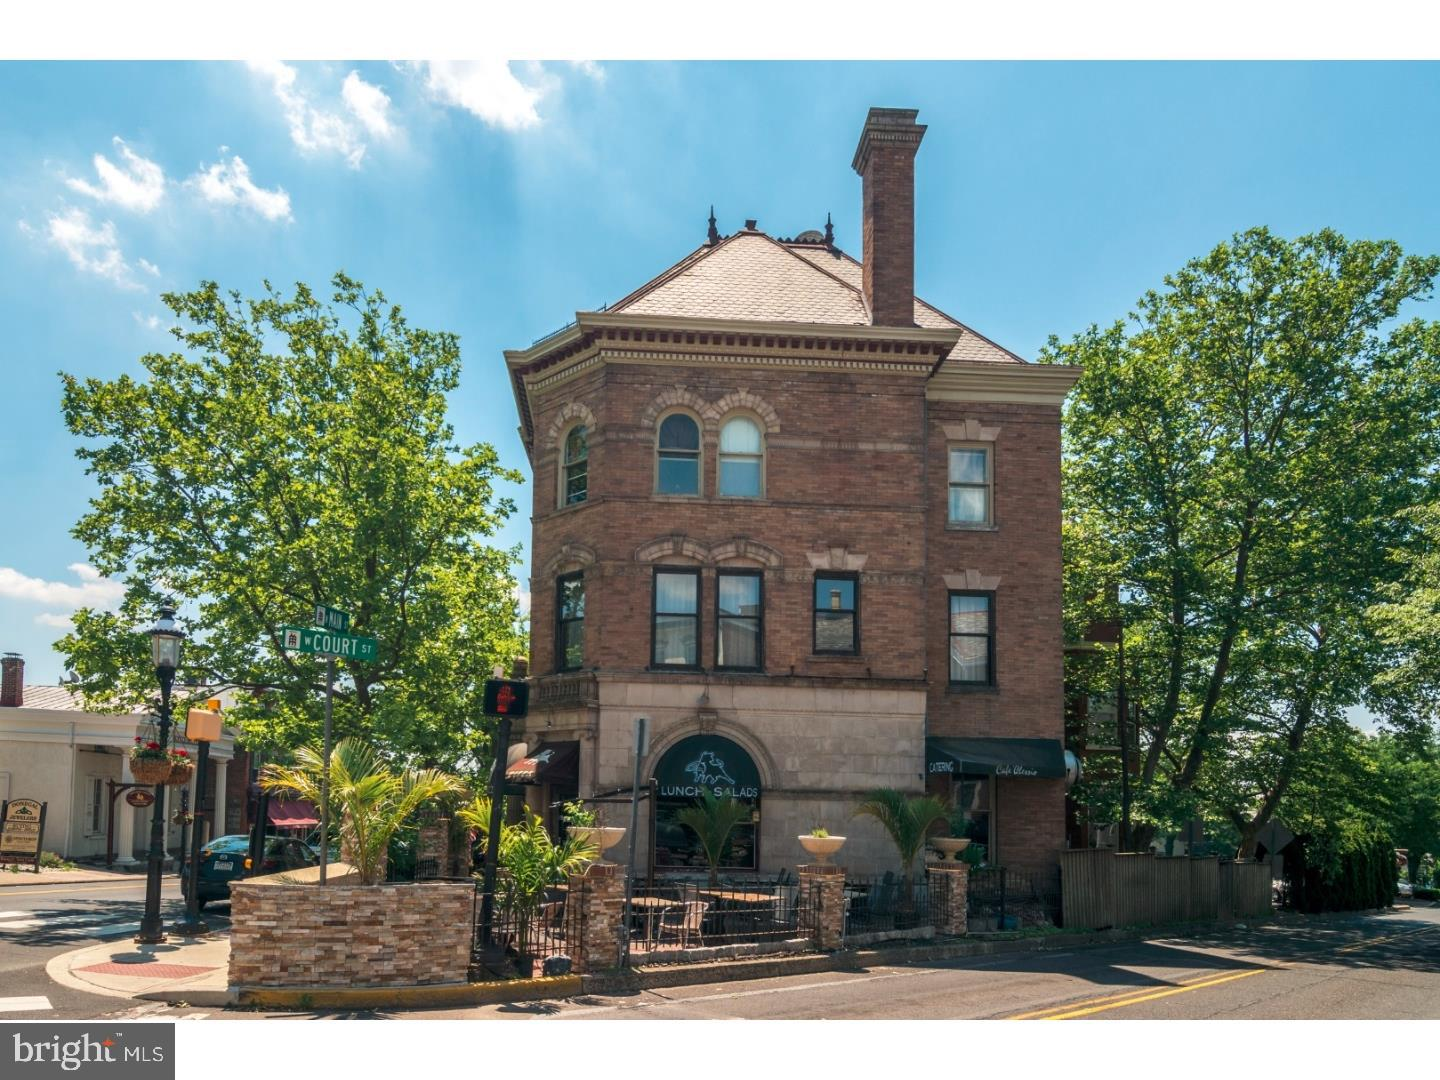 24 N MAIN STREET, DOYLESTOWN, PA 18901